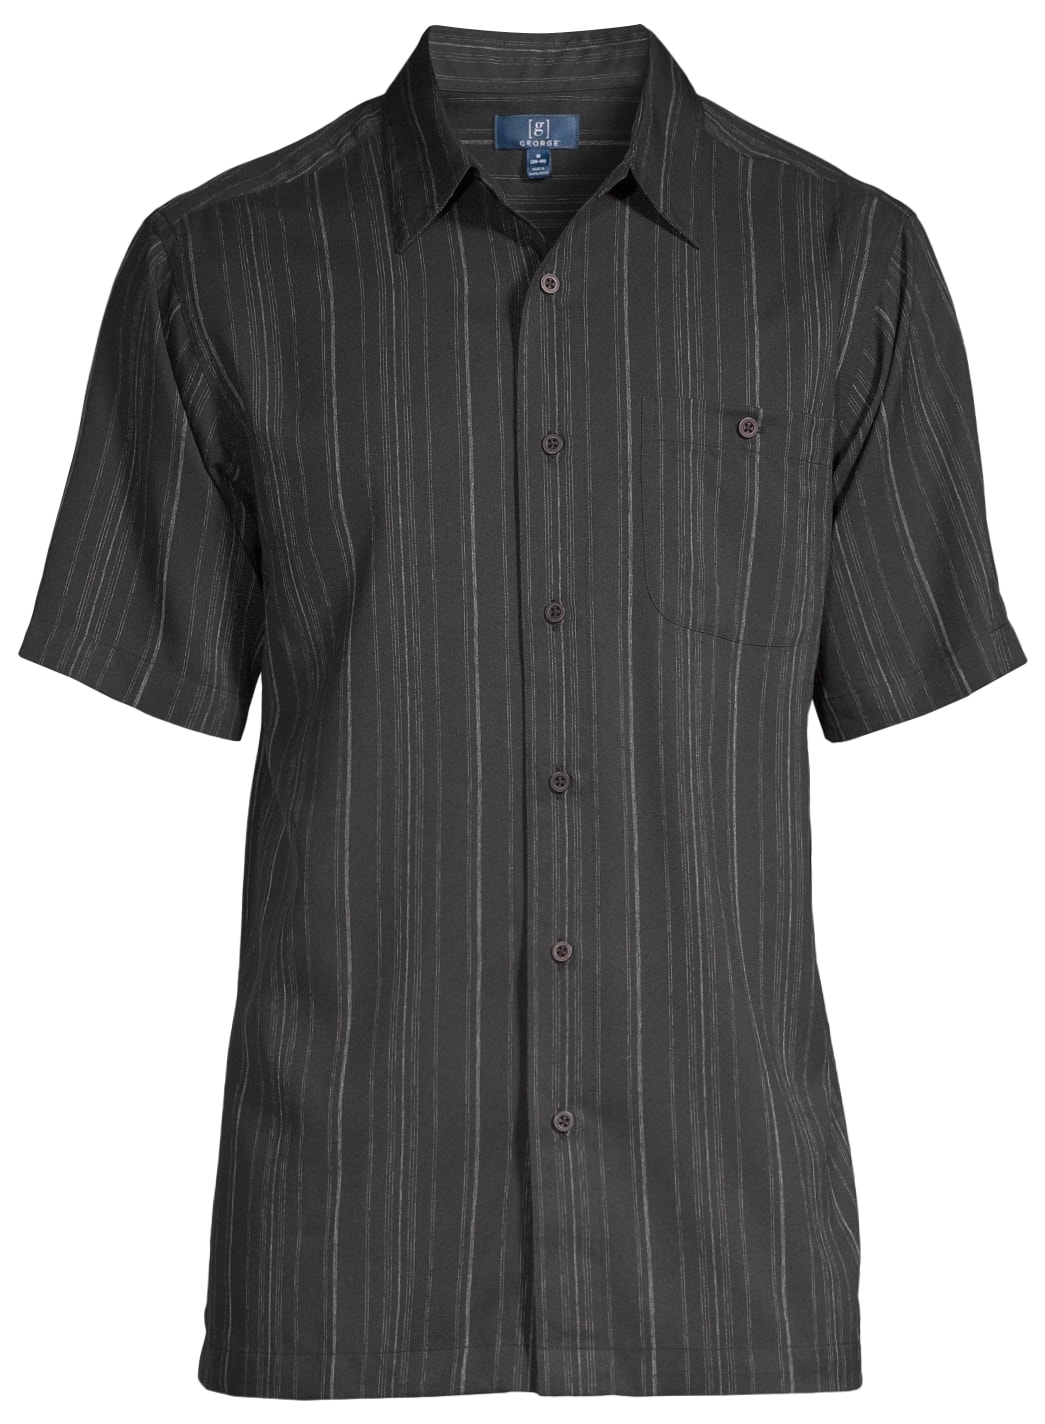 George Men's Short Sleeve Button Down Microfiber Shirt (8 colors, up to size 3XL) $5 + Free pickup at Walmart